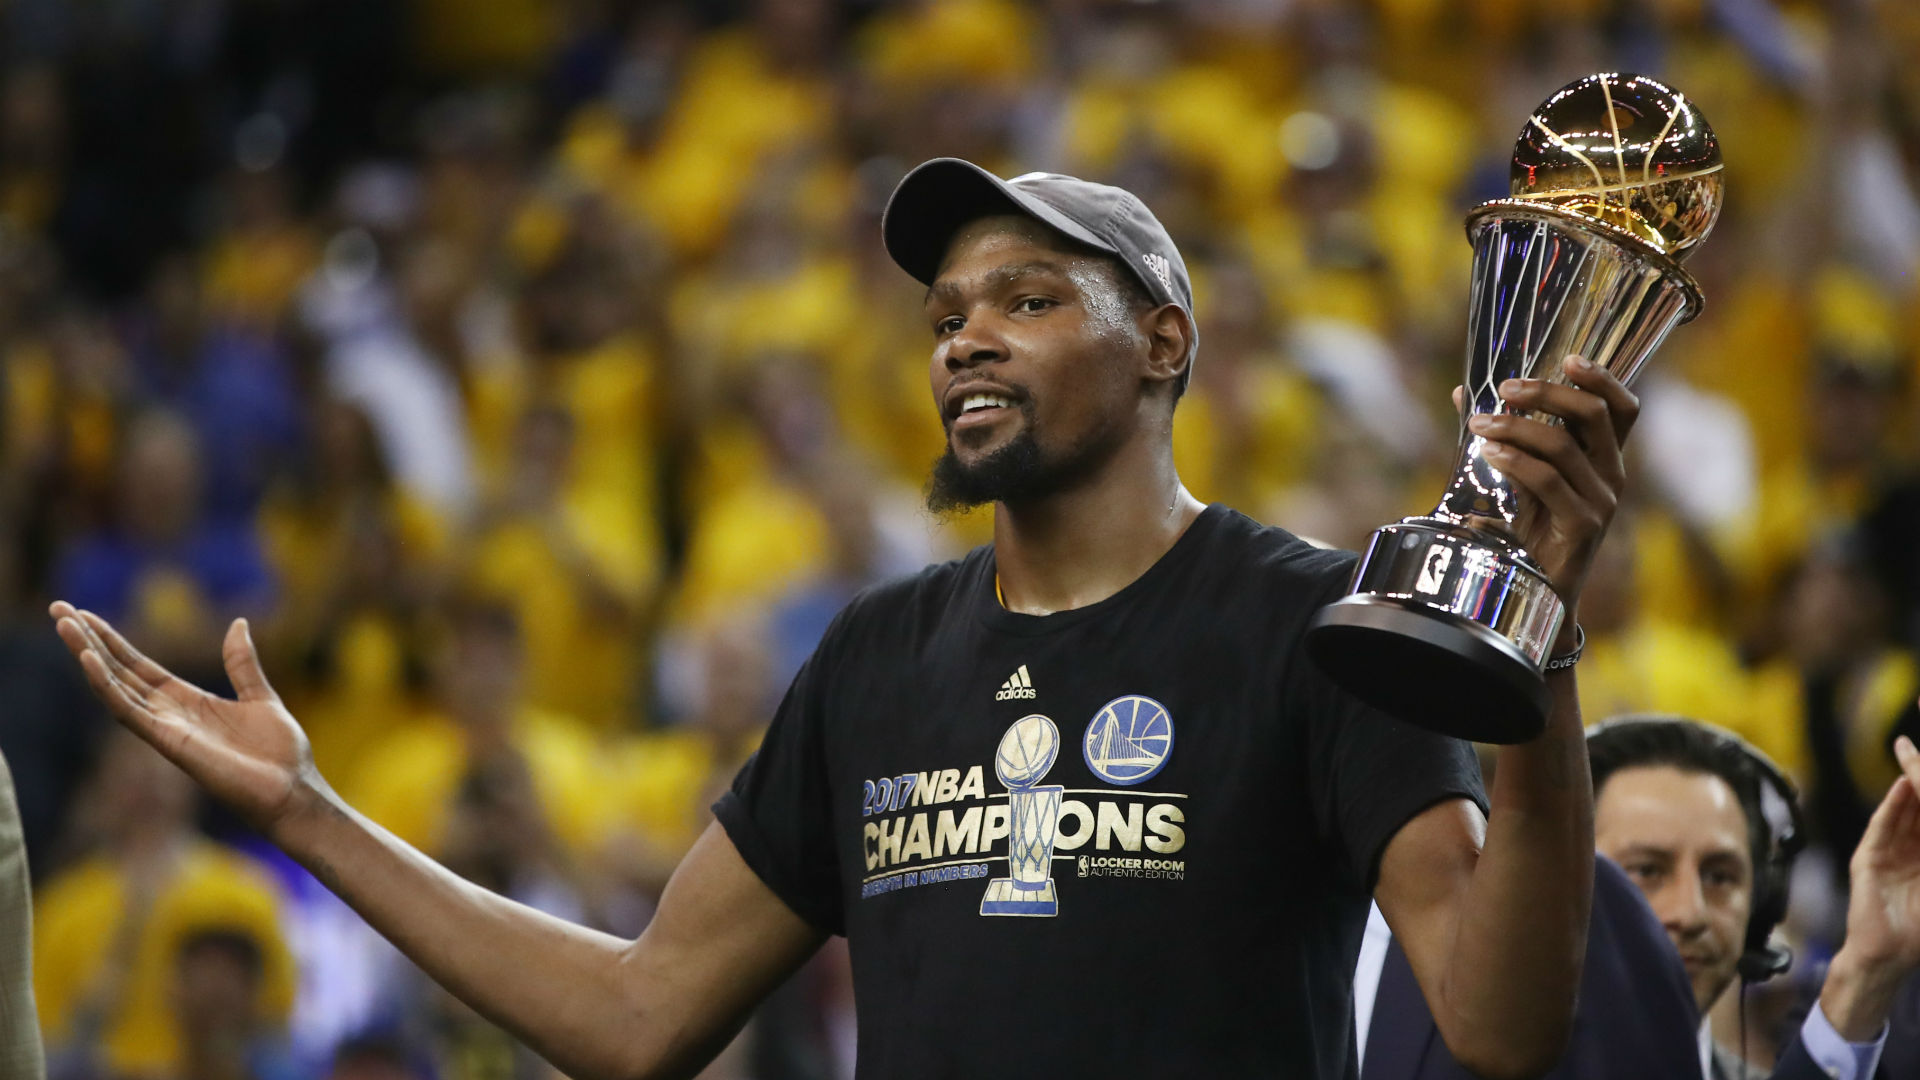 Former Longhorn Kevin Durant wins NBA Finals MVP as Warriors win title